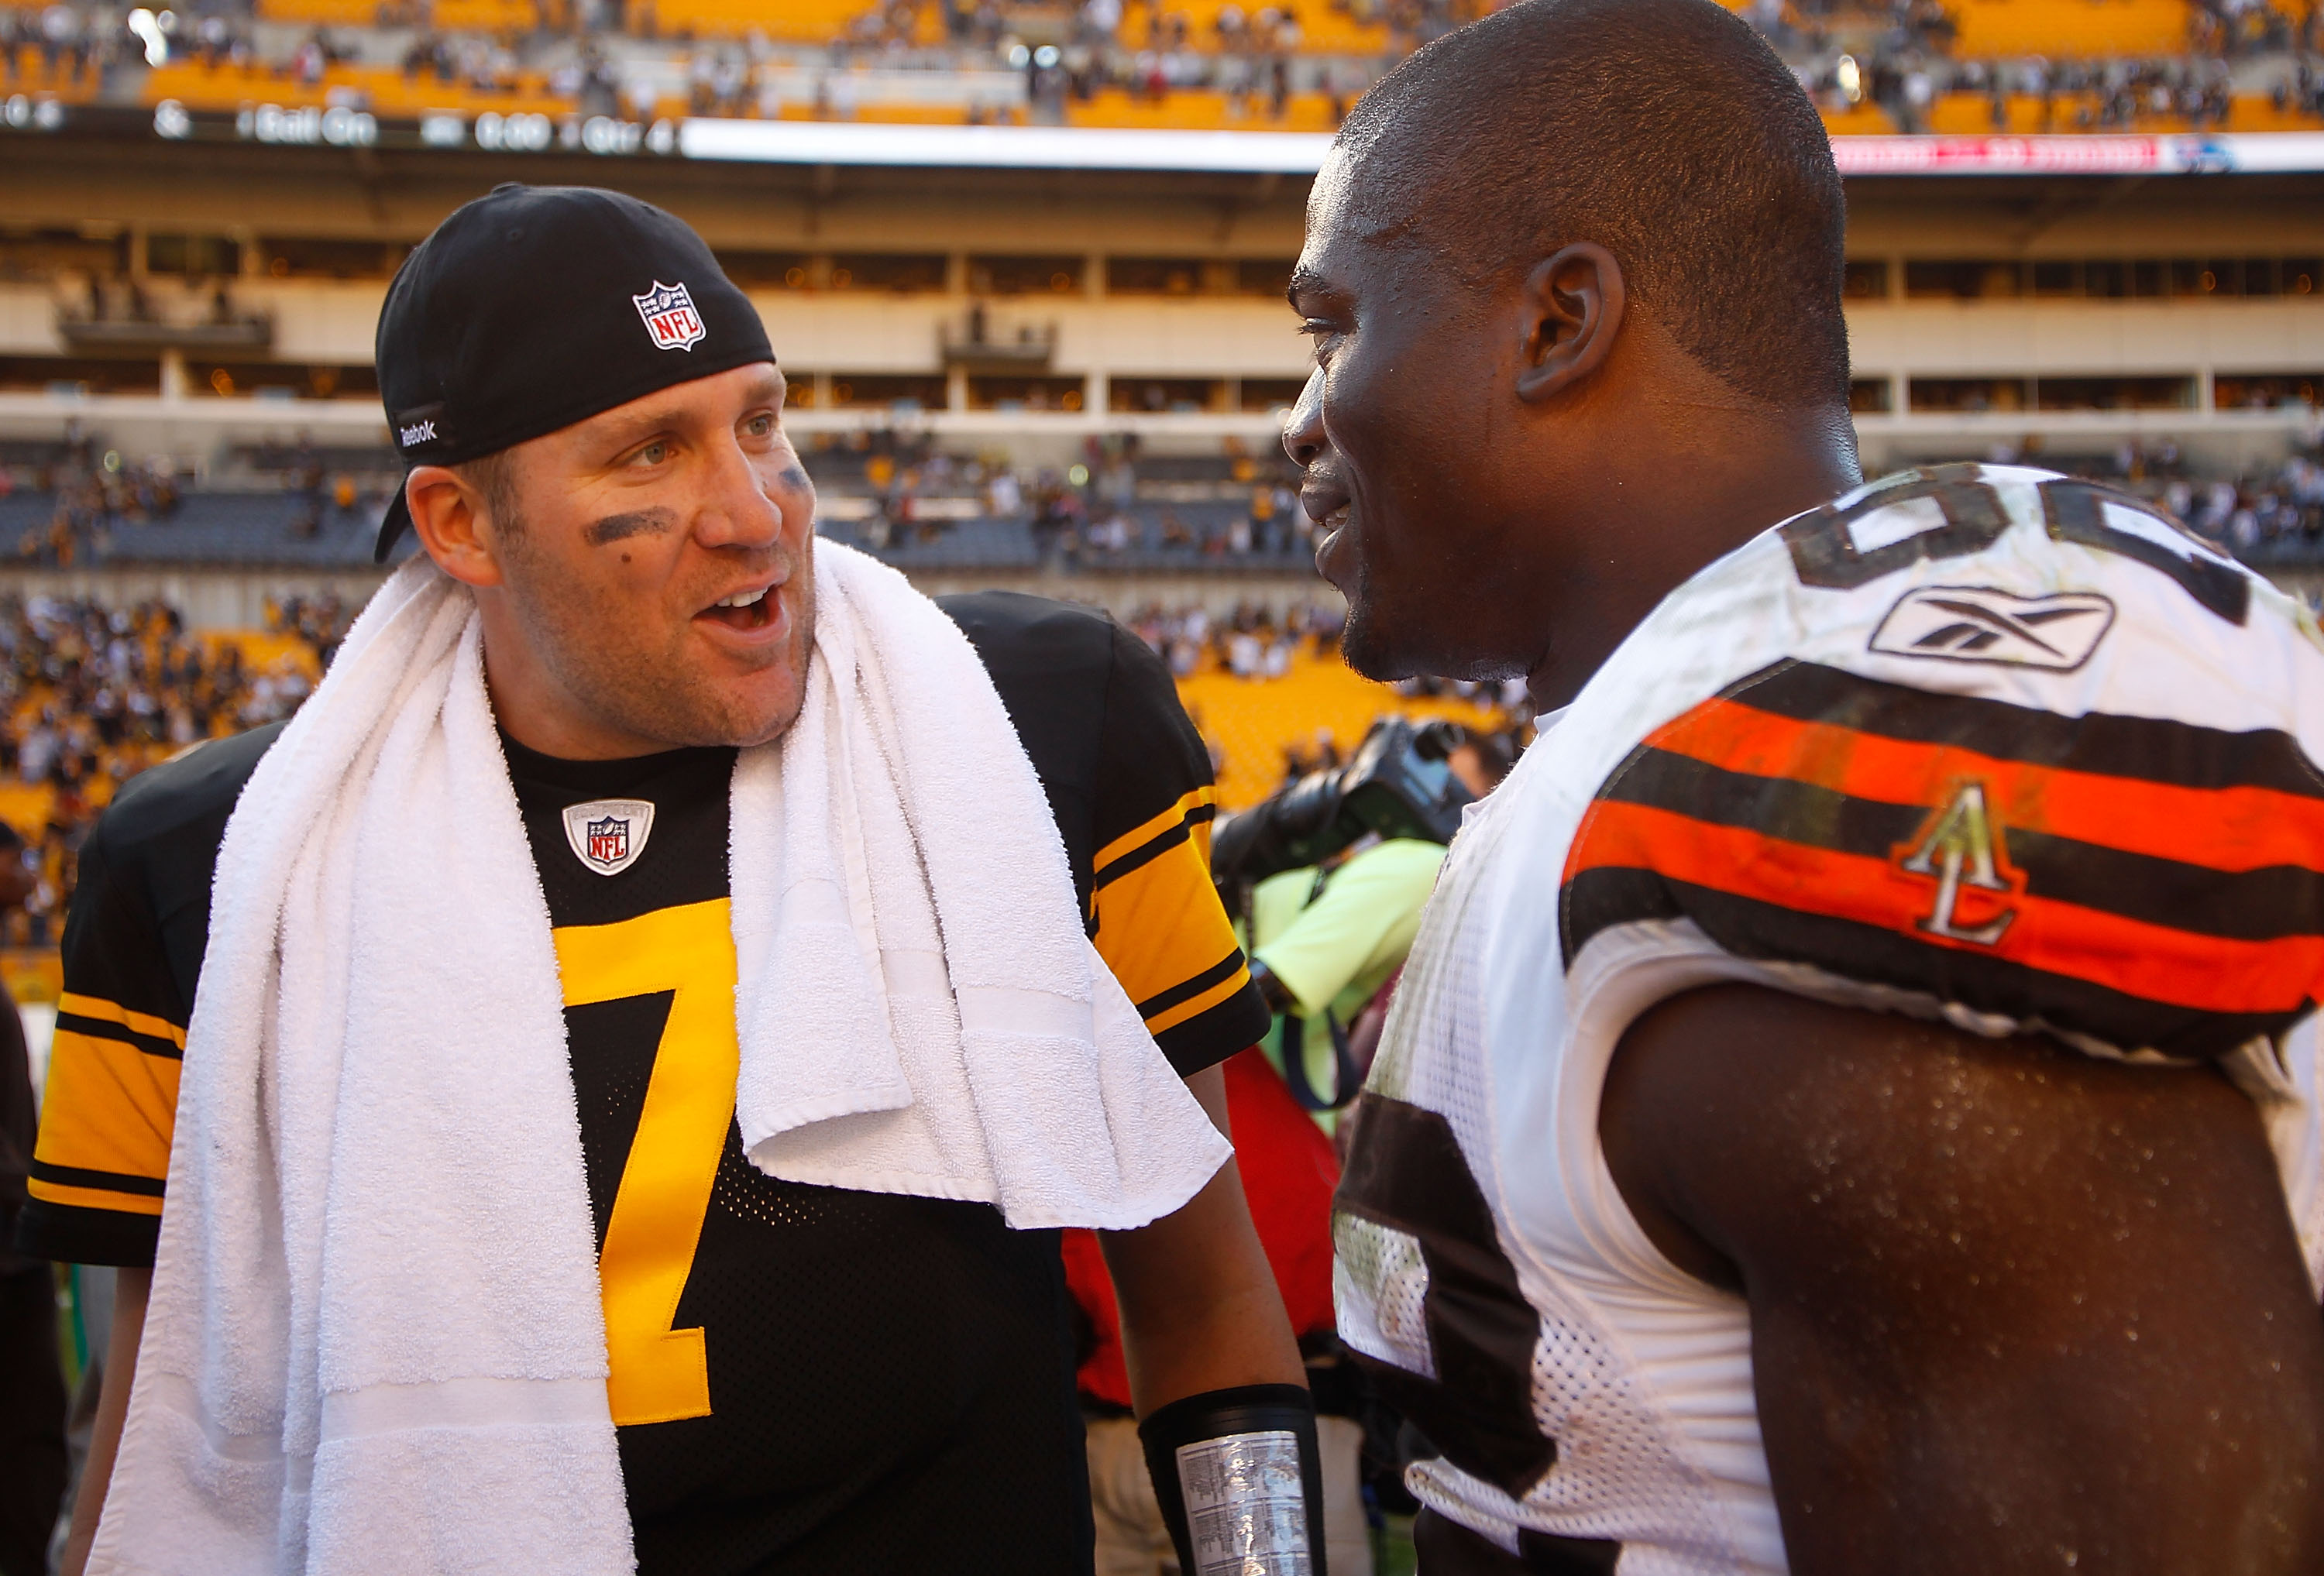 PITTSBURGH - OCTOBER 17:  Ben Roethlisberger #7 of the Pittsburgh Steelers talks with Benjamin Watson #82 of the Cleveland Browns following the Steelers 28-10 win on October 17, 2010 at Heinz Field in Pittsburgh, Pennsylvania.  (Photo by Jared Wickerham/G